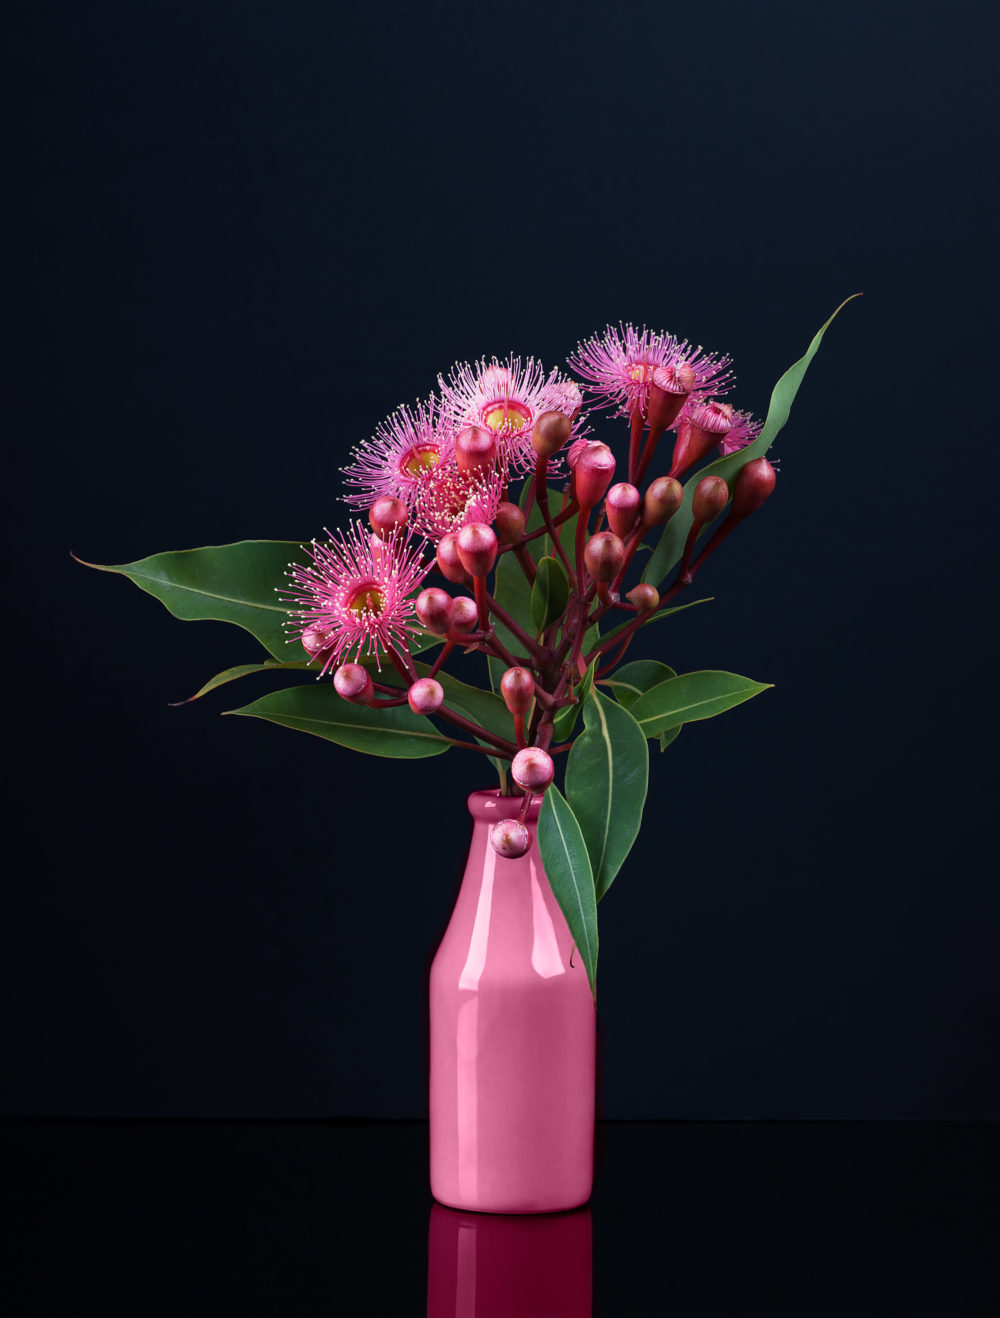 Elegant bouquet of vivid pink Eucalyptus flowers in a pink vase isolated on black background